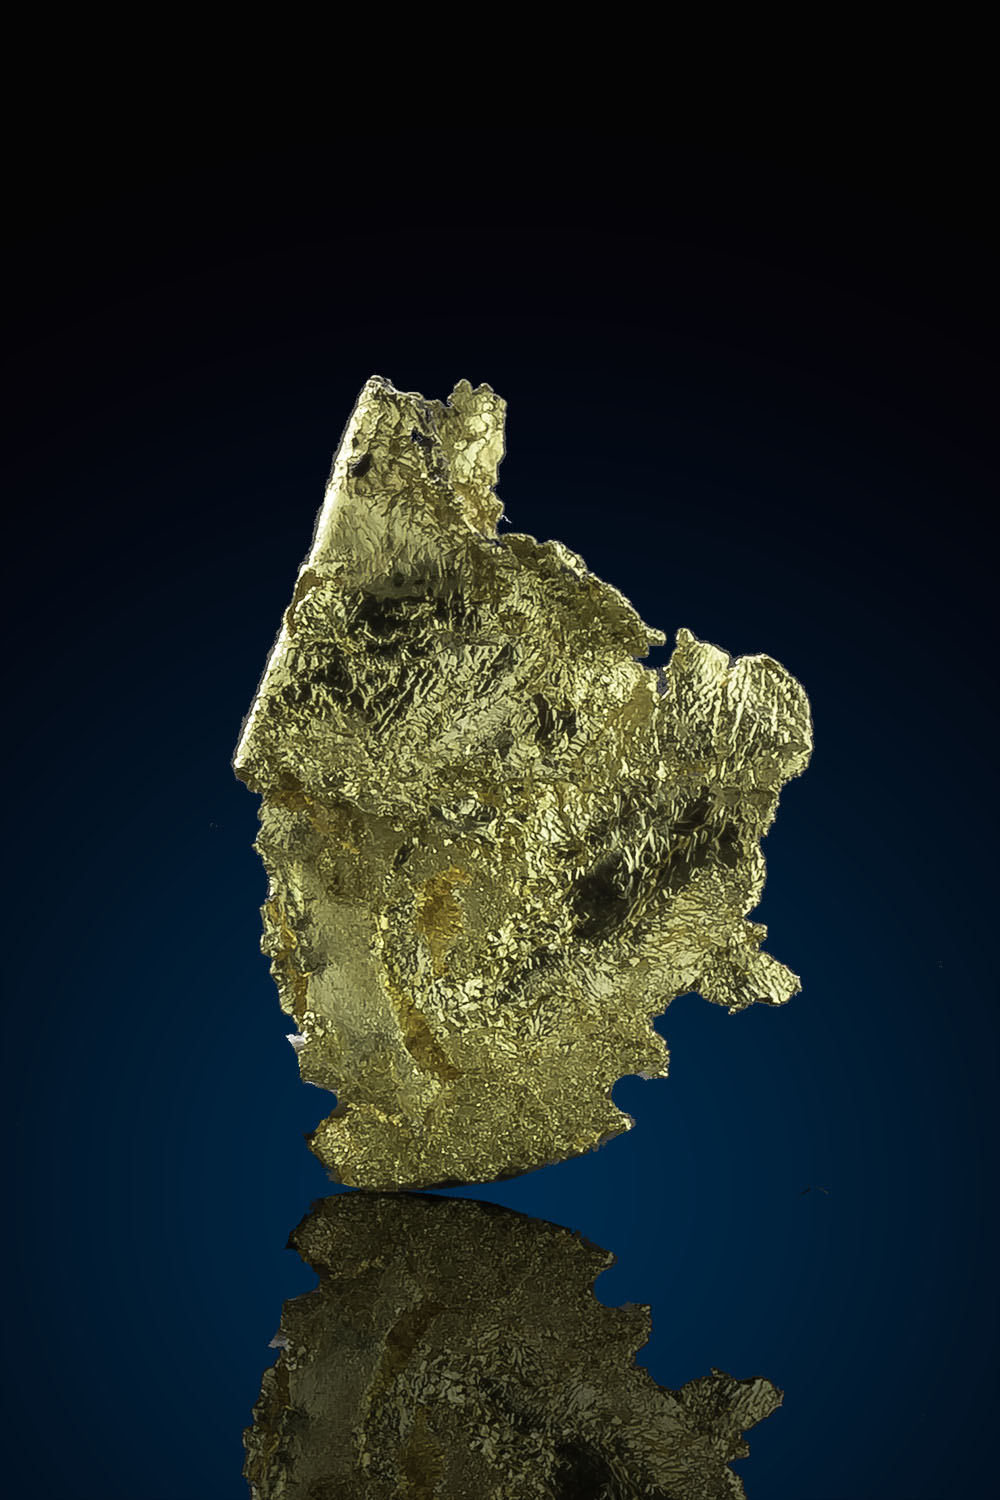 Allegheny District - Natural Crystalline Gold Specimen